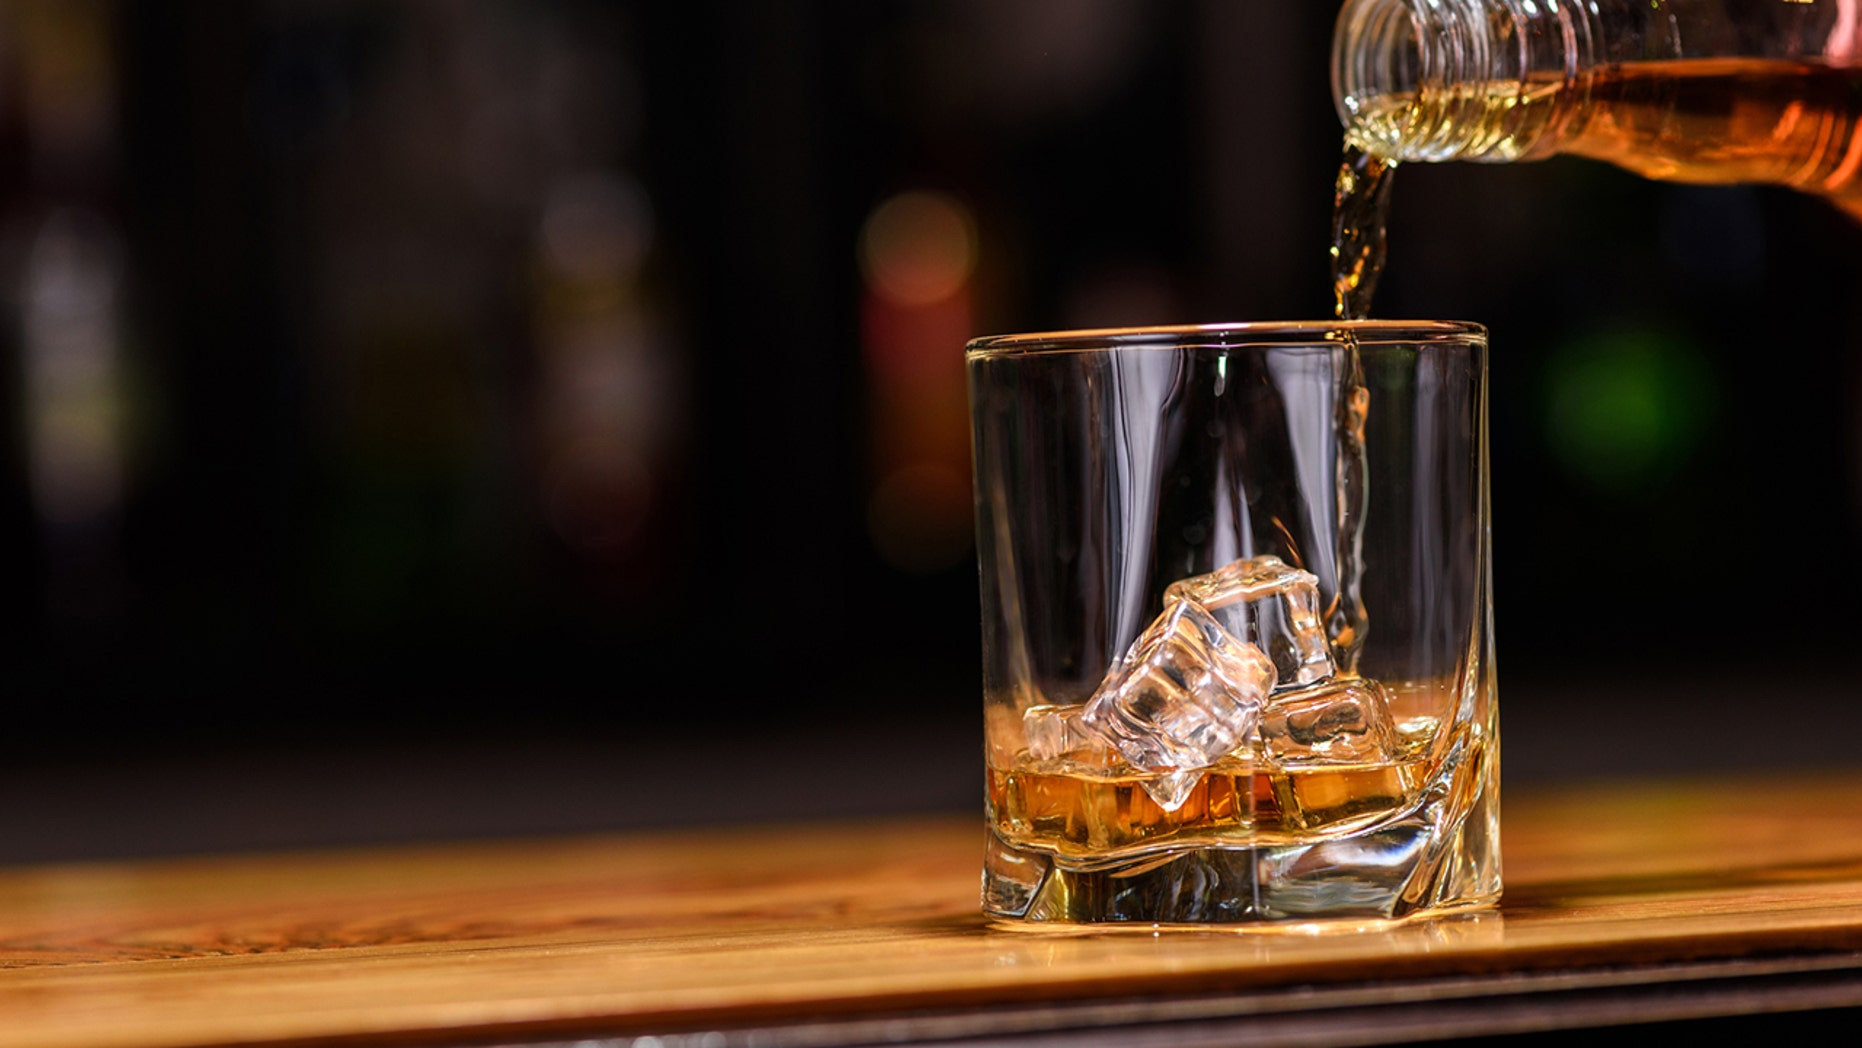 """The hotel that sold him the Macallan says it submitted the bottle for """"rigorous"""" authenticity tests."""